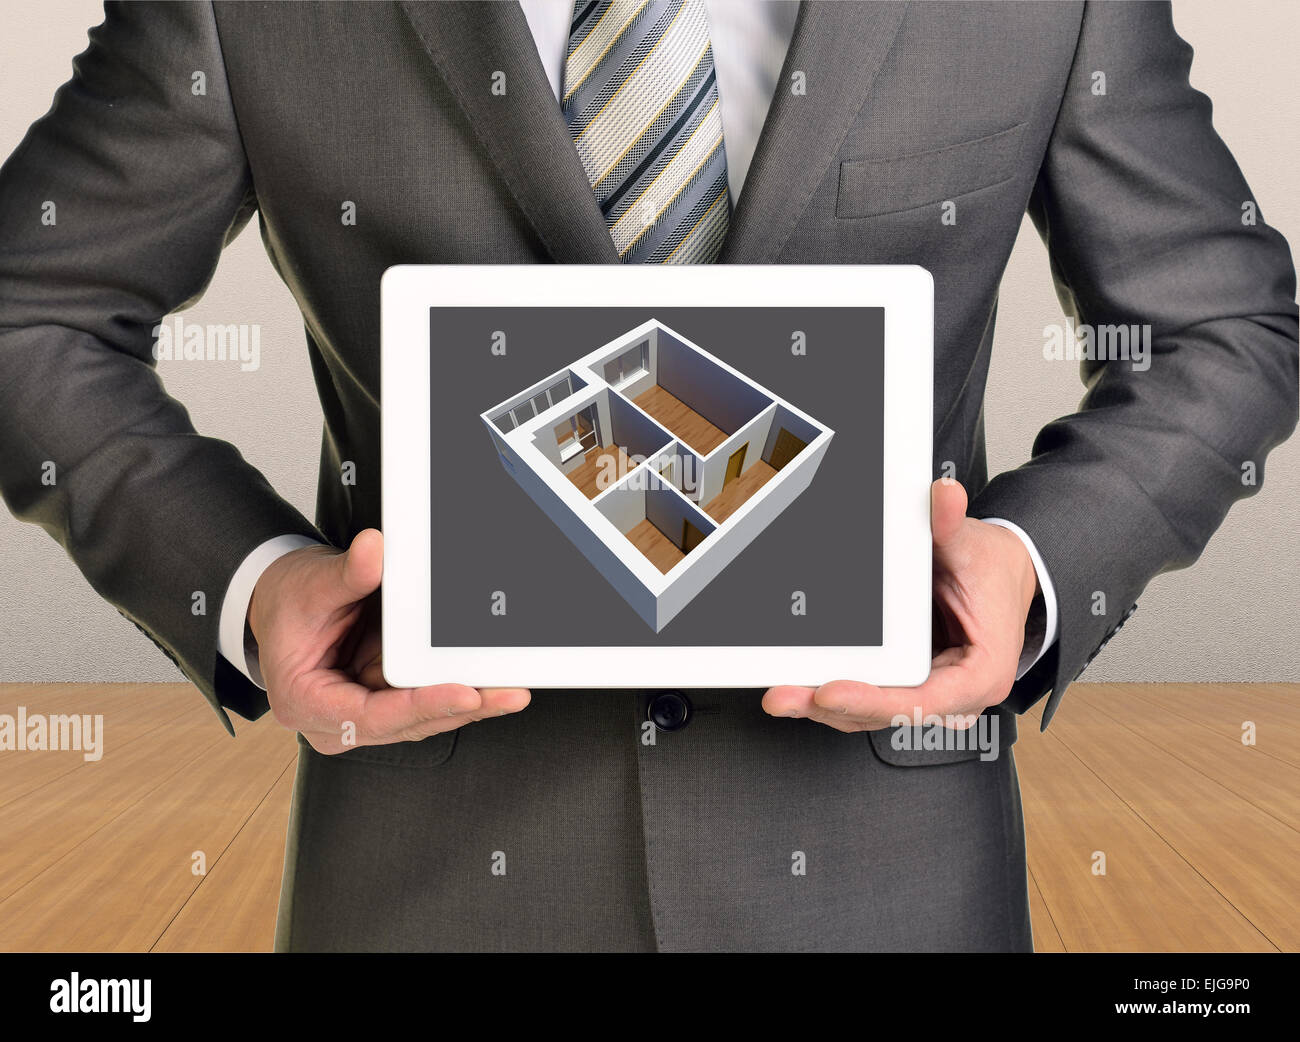 Man holding tablet with three-dimensional model in screen - Stock Image